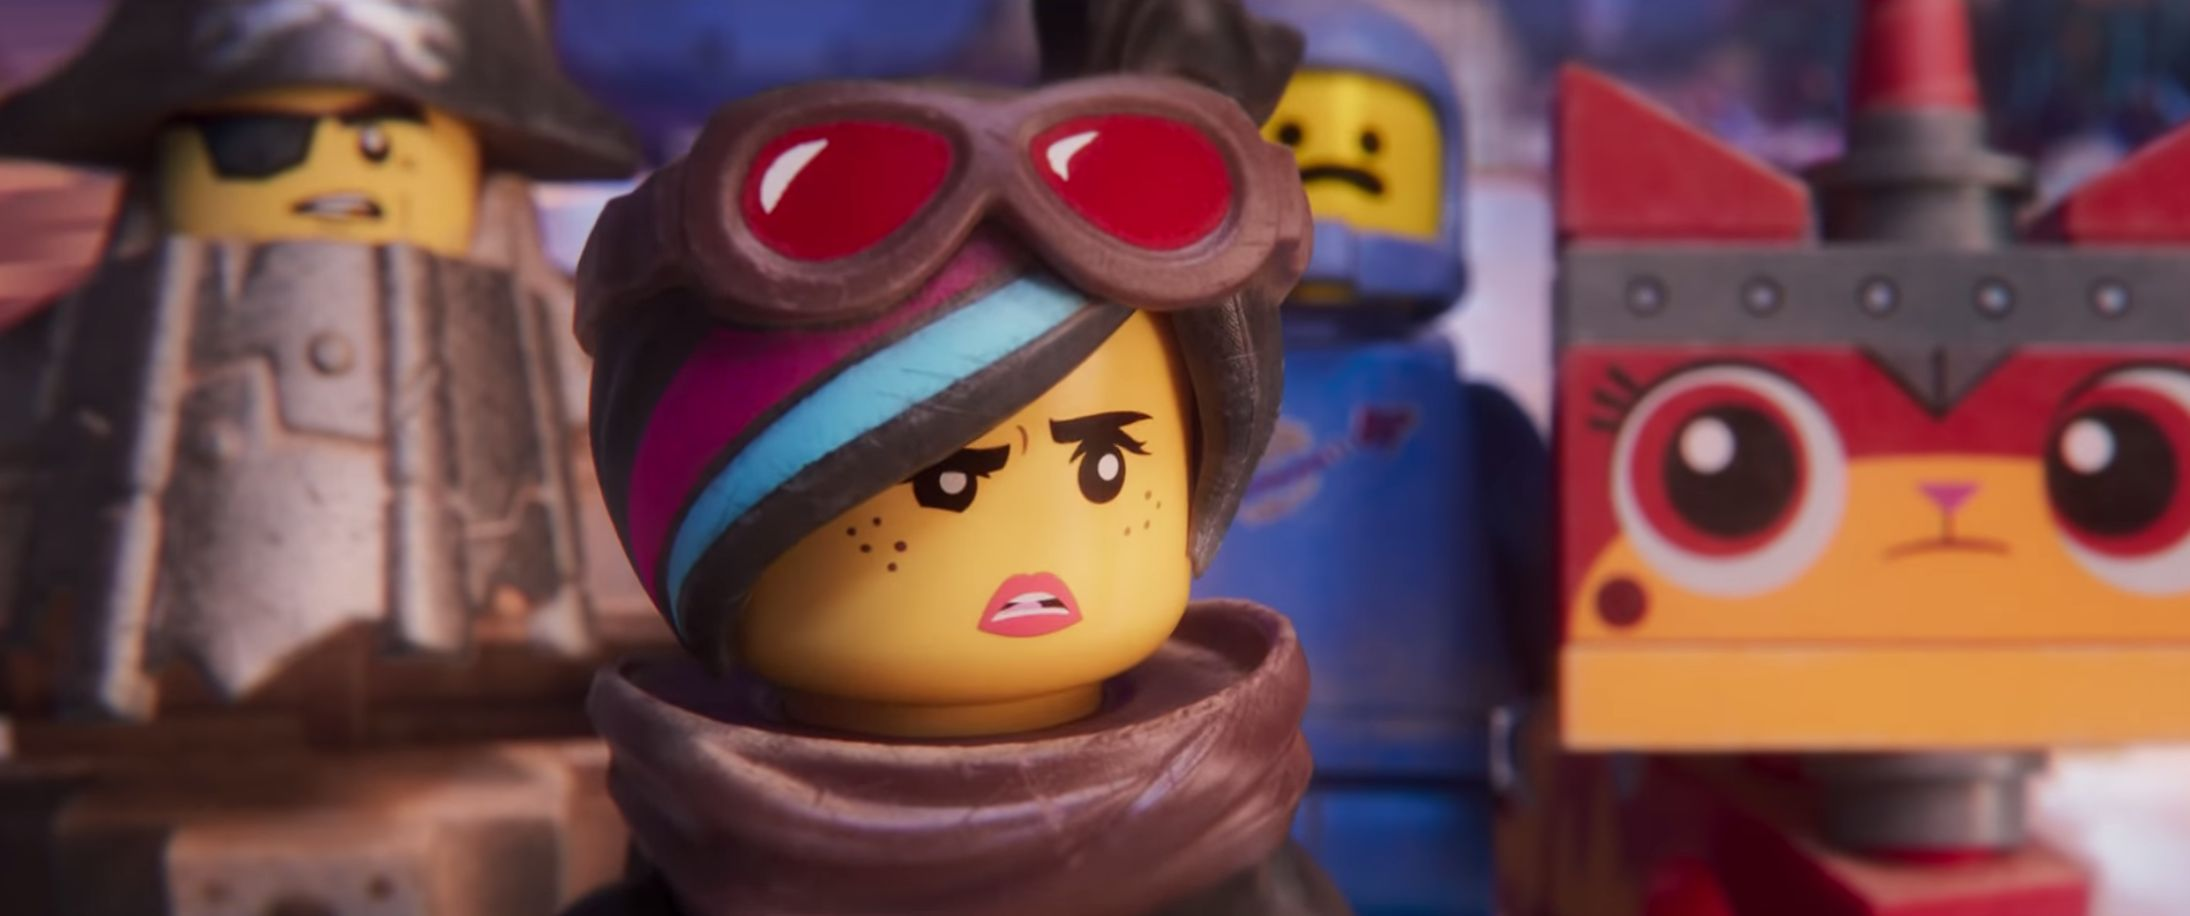 """""""The Lego Movie 2"""" promises an even more annoyingly catchy song than the first film's """"Everything Is Awesome."""""""